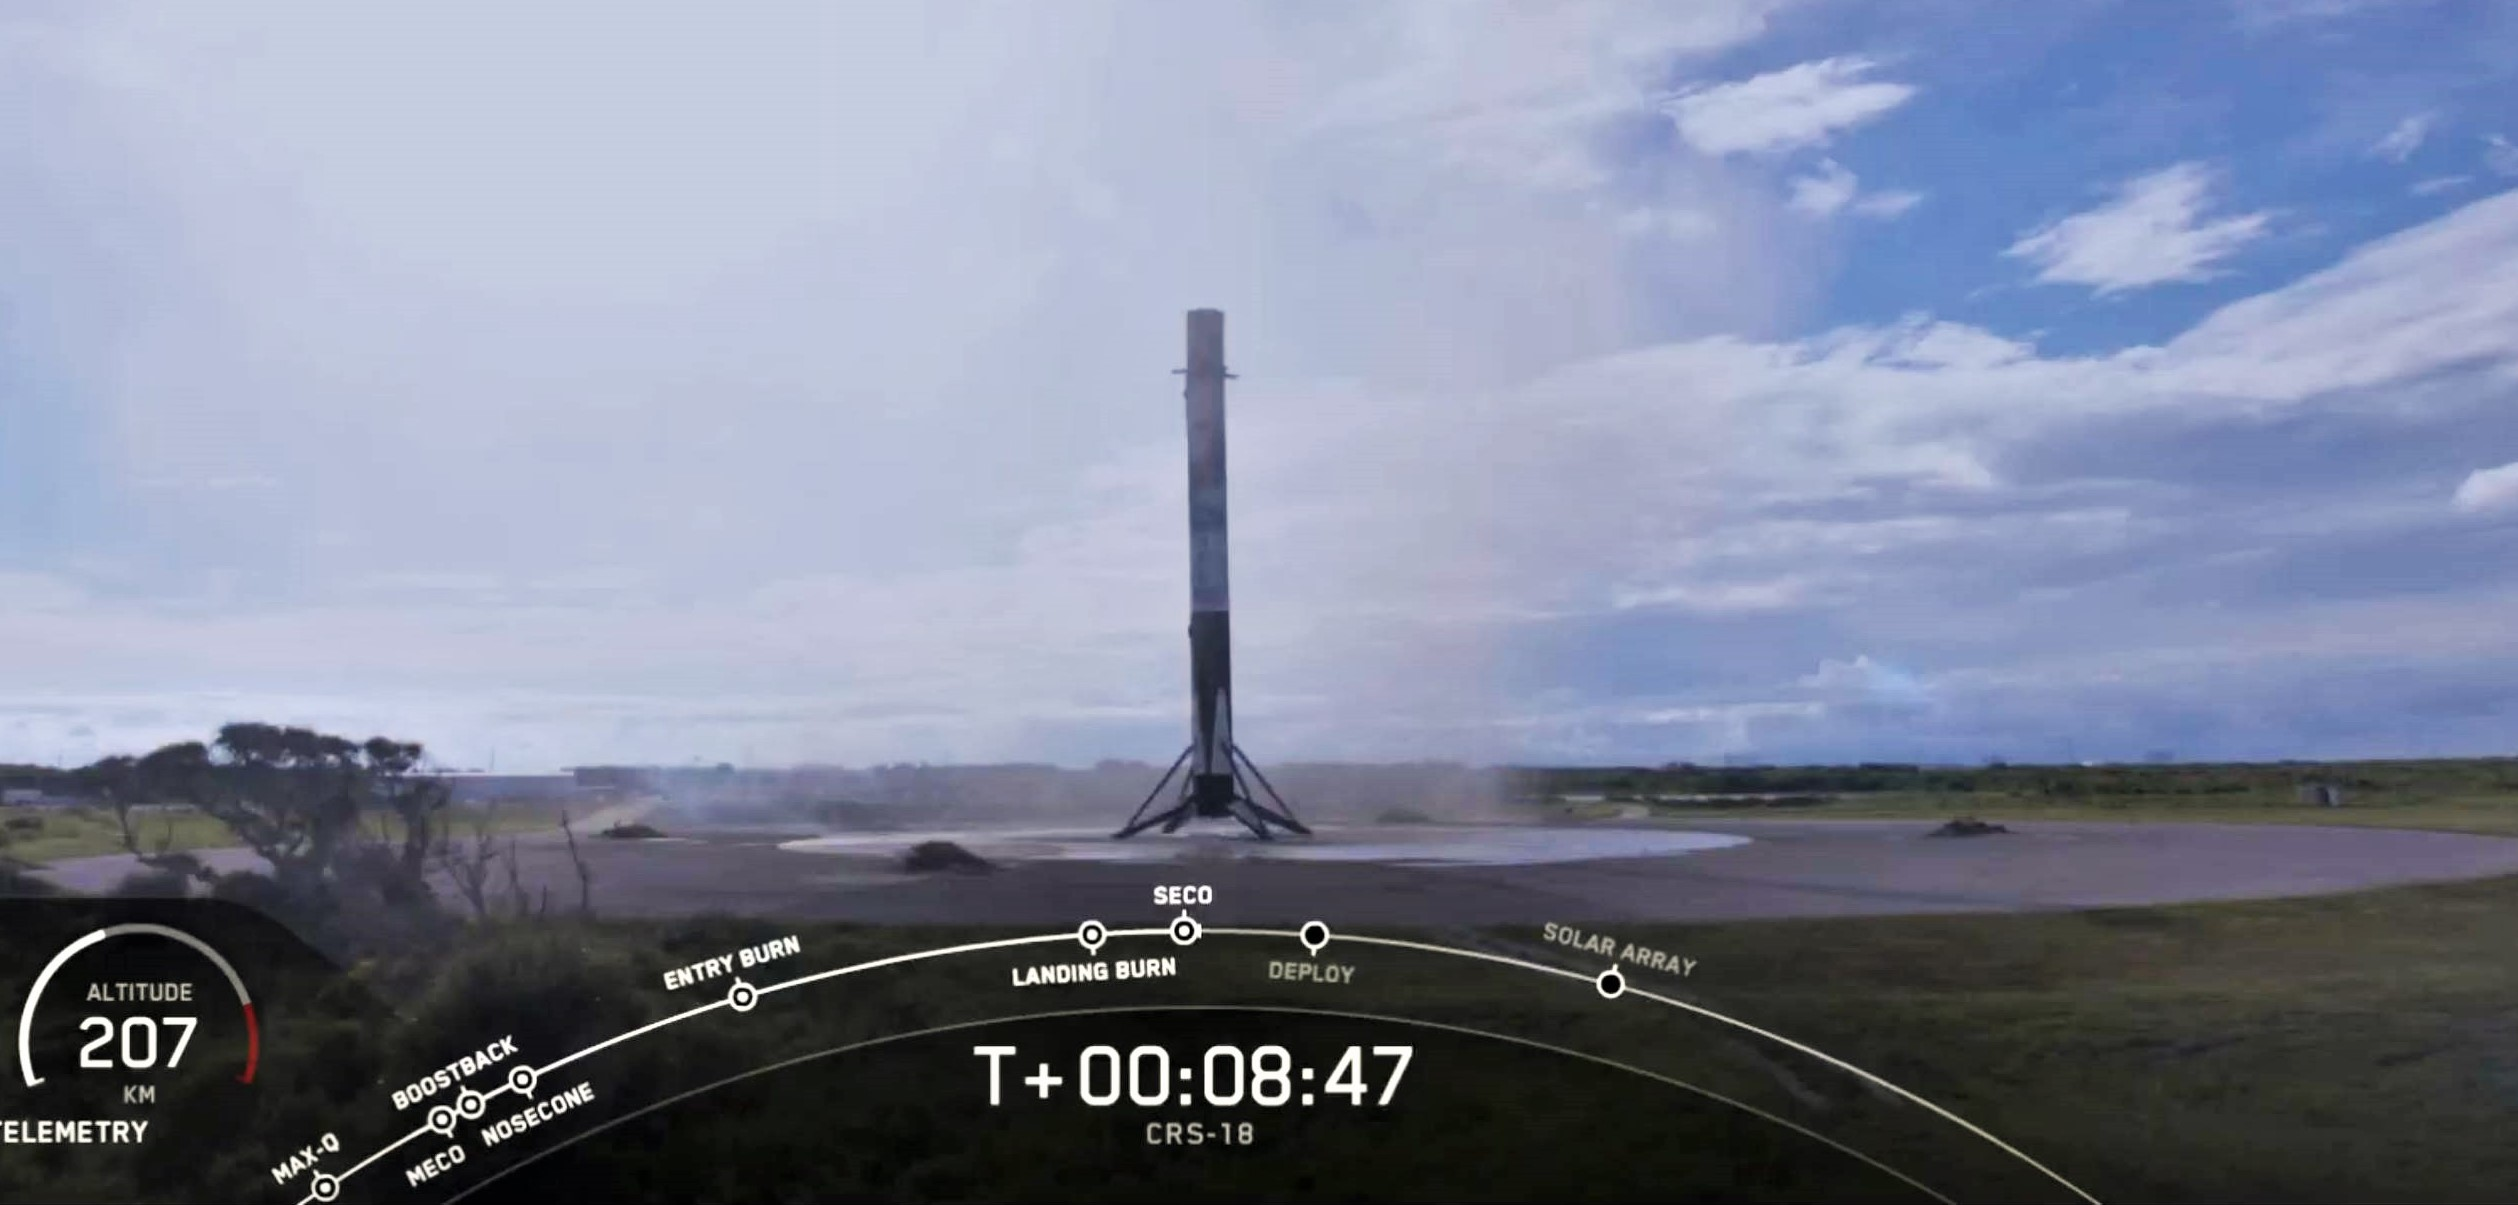 Cargo Dragon CRS-18 Falcon 9 B1056 (SpaceX) webcast 2 landing 5